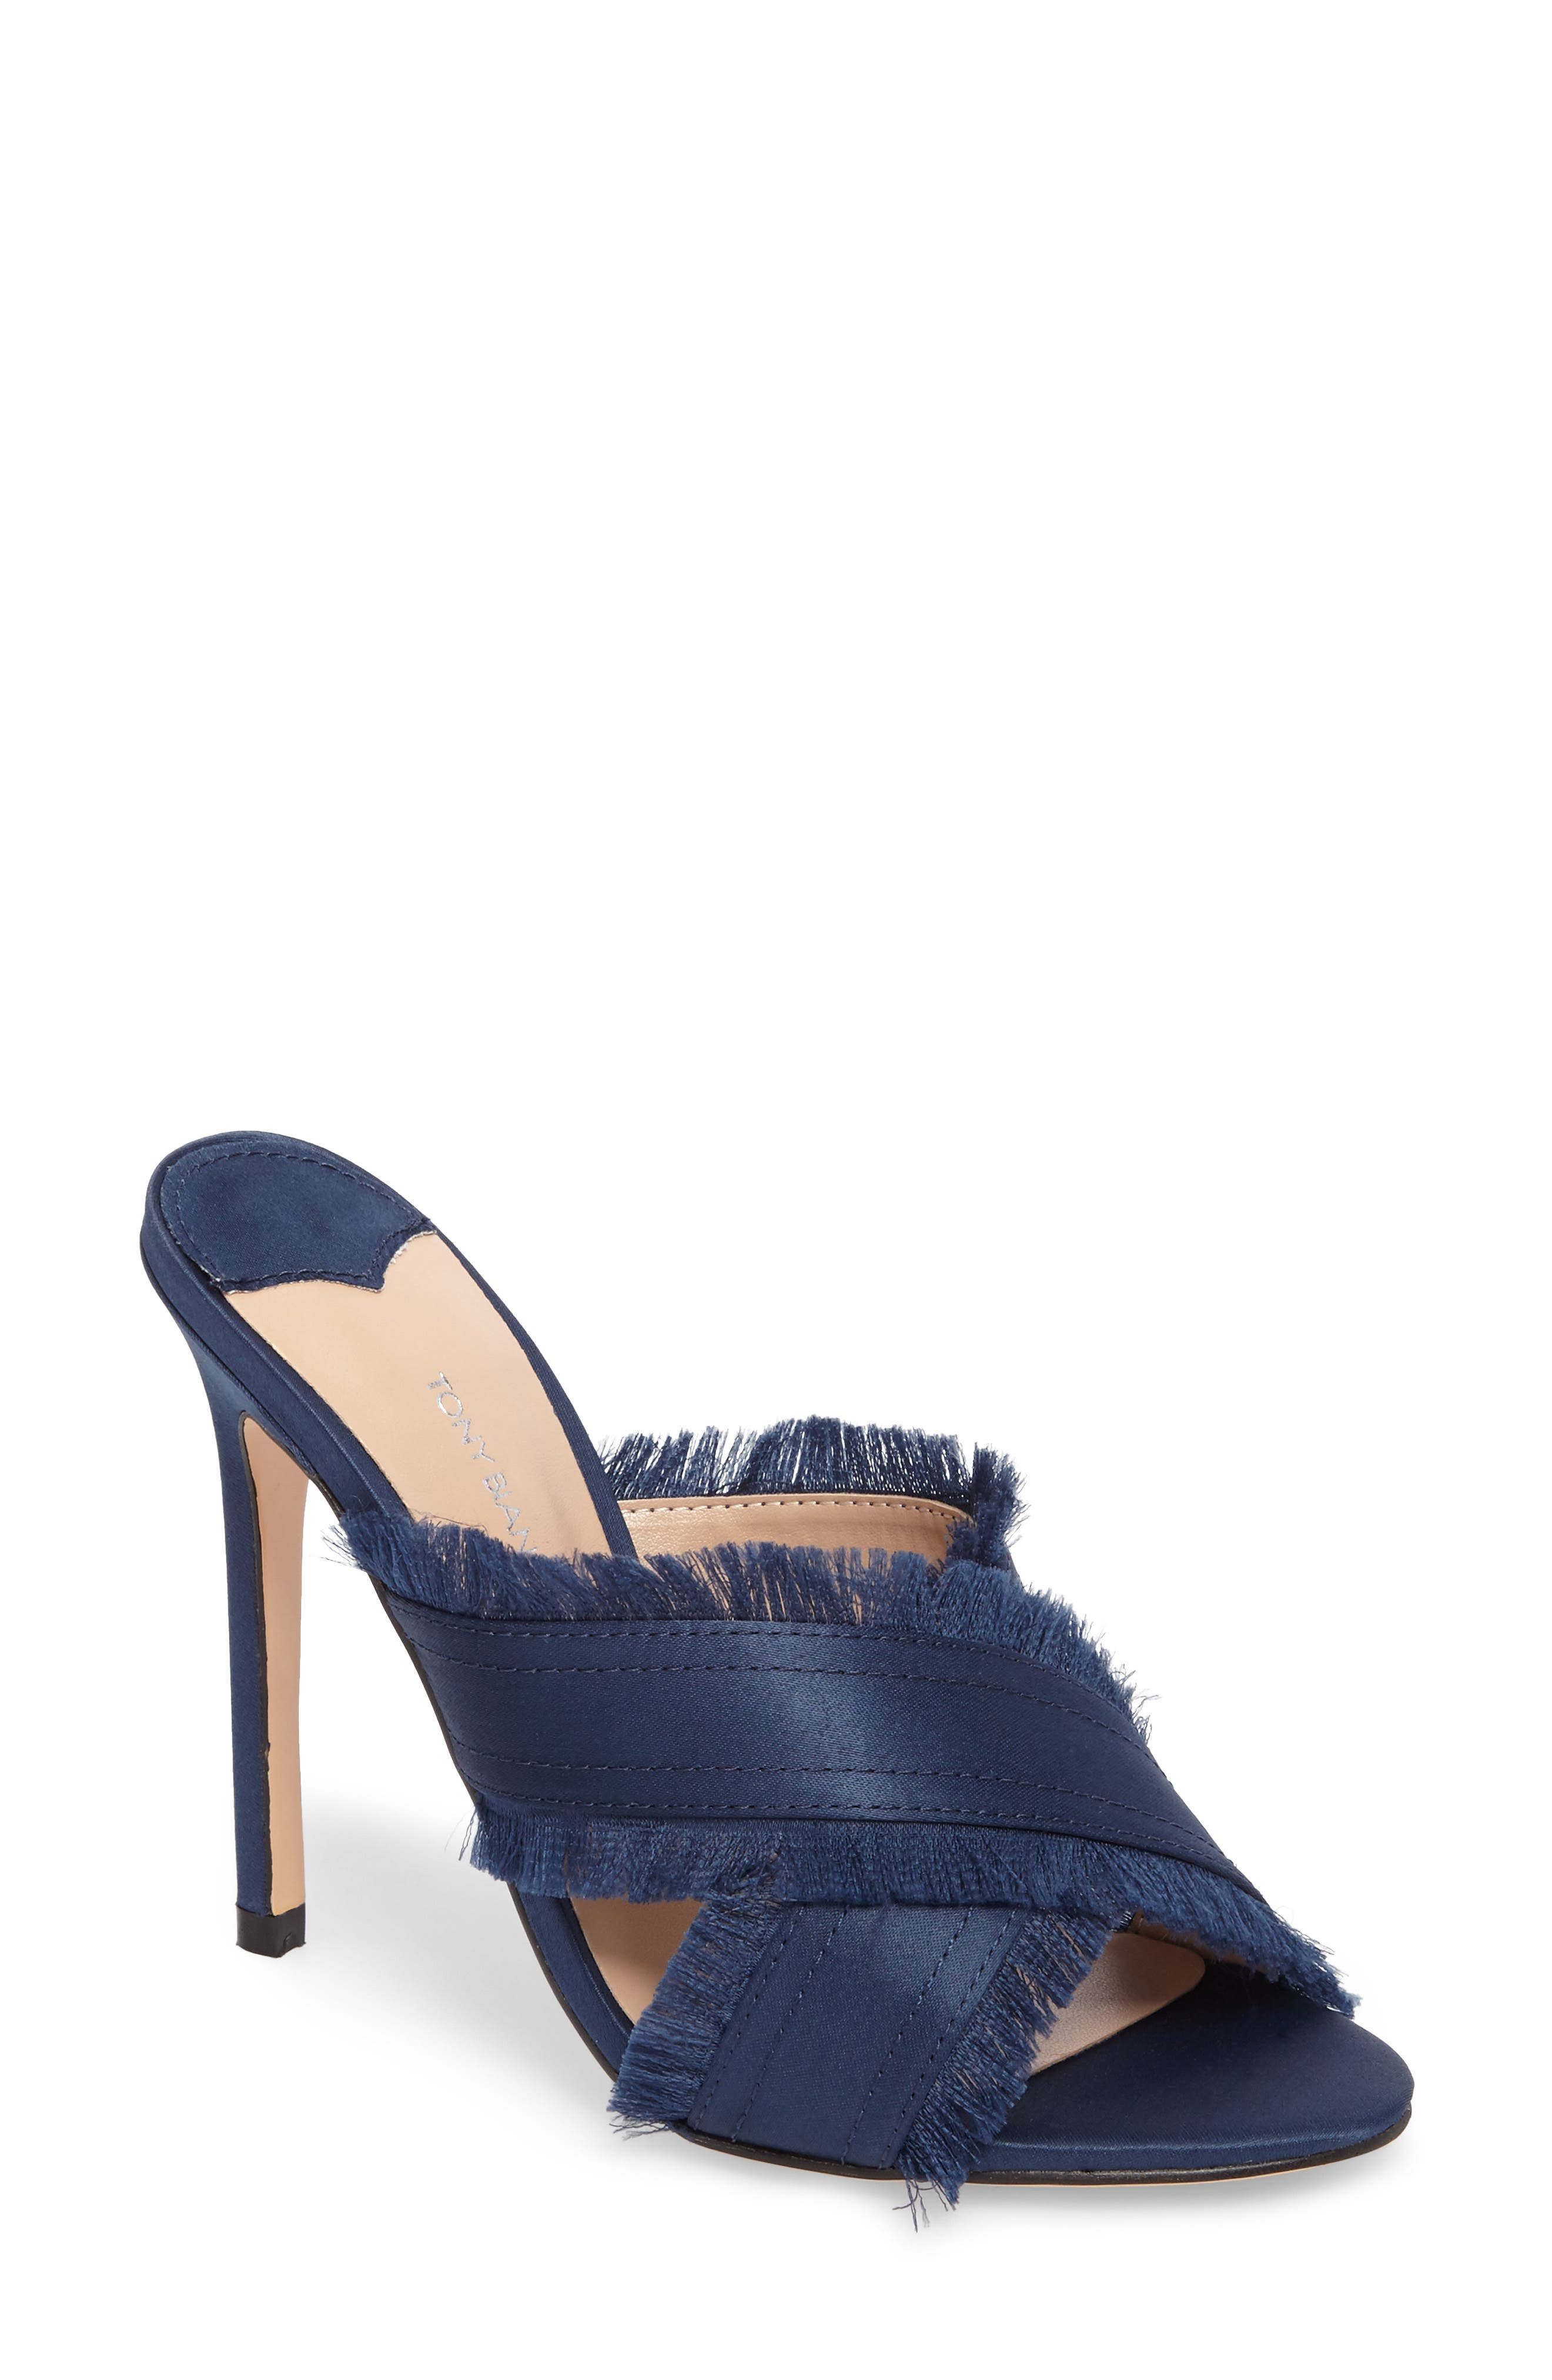 Klay Fringed Cross Strap Mule,                             Main thumbnail 1, color,                             Navy Luxe Satin